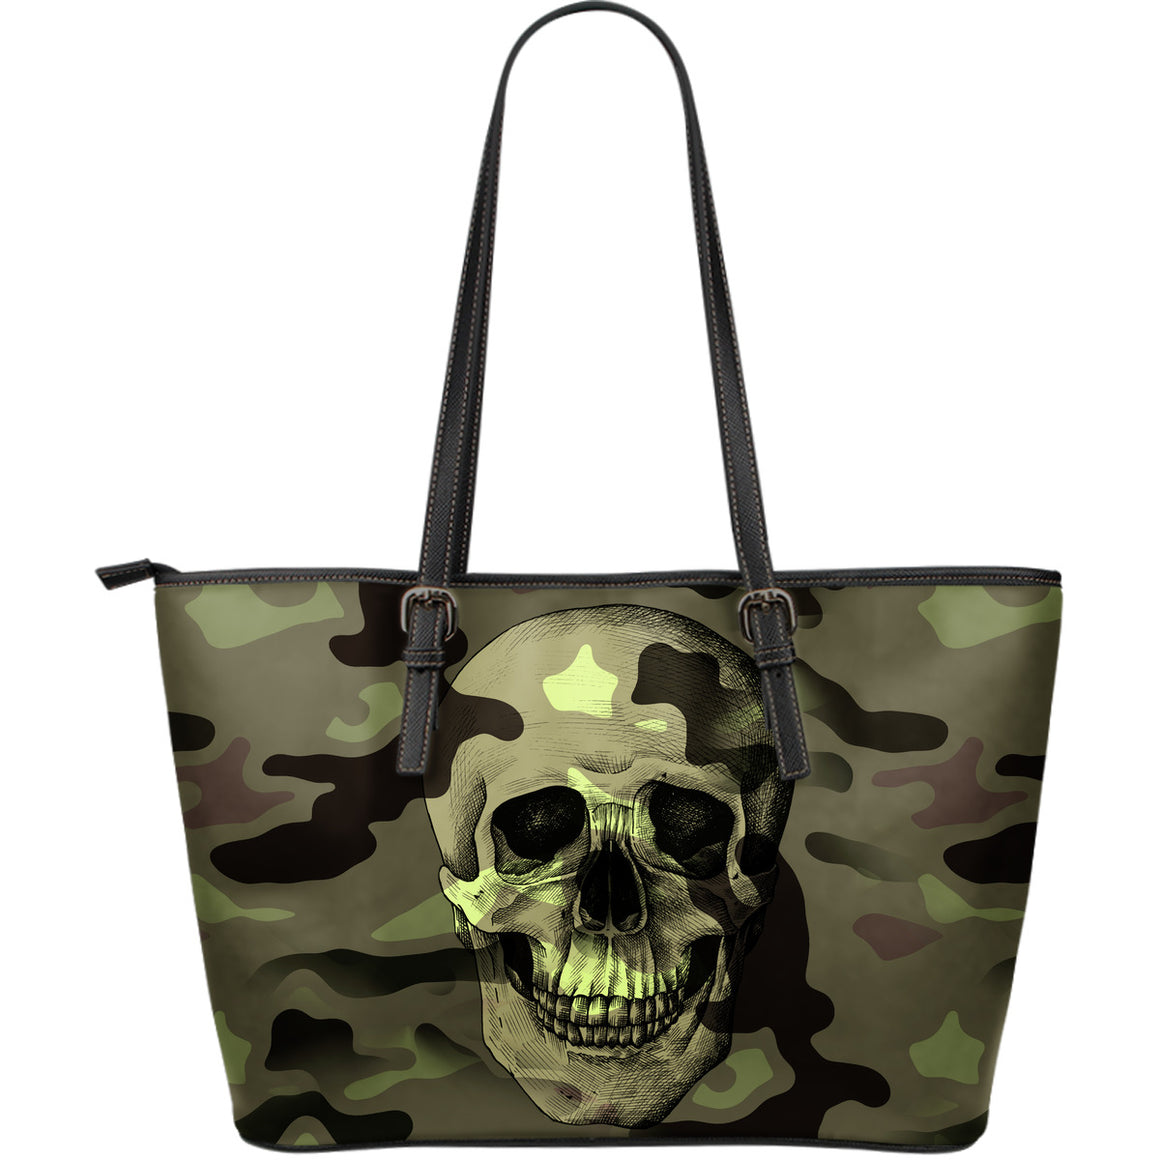 Camo Skull Large Leather Tote